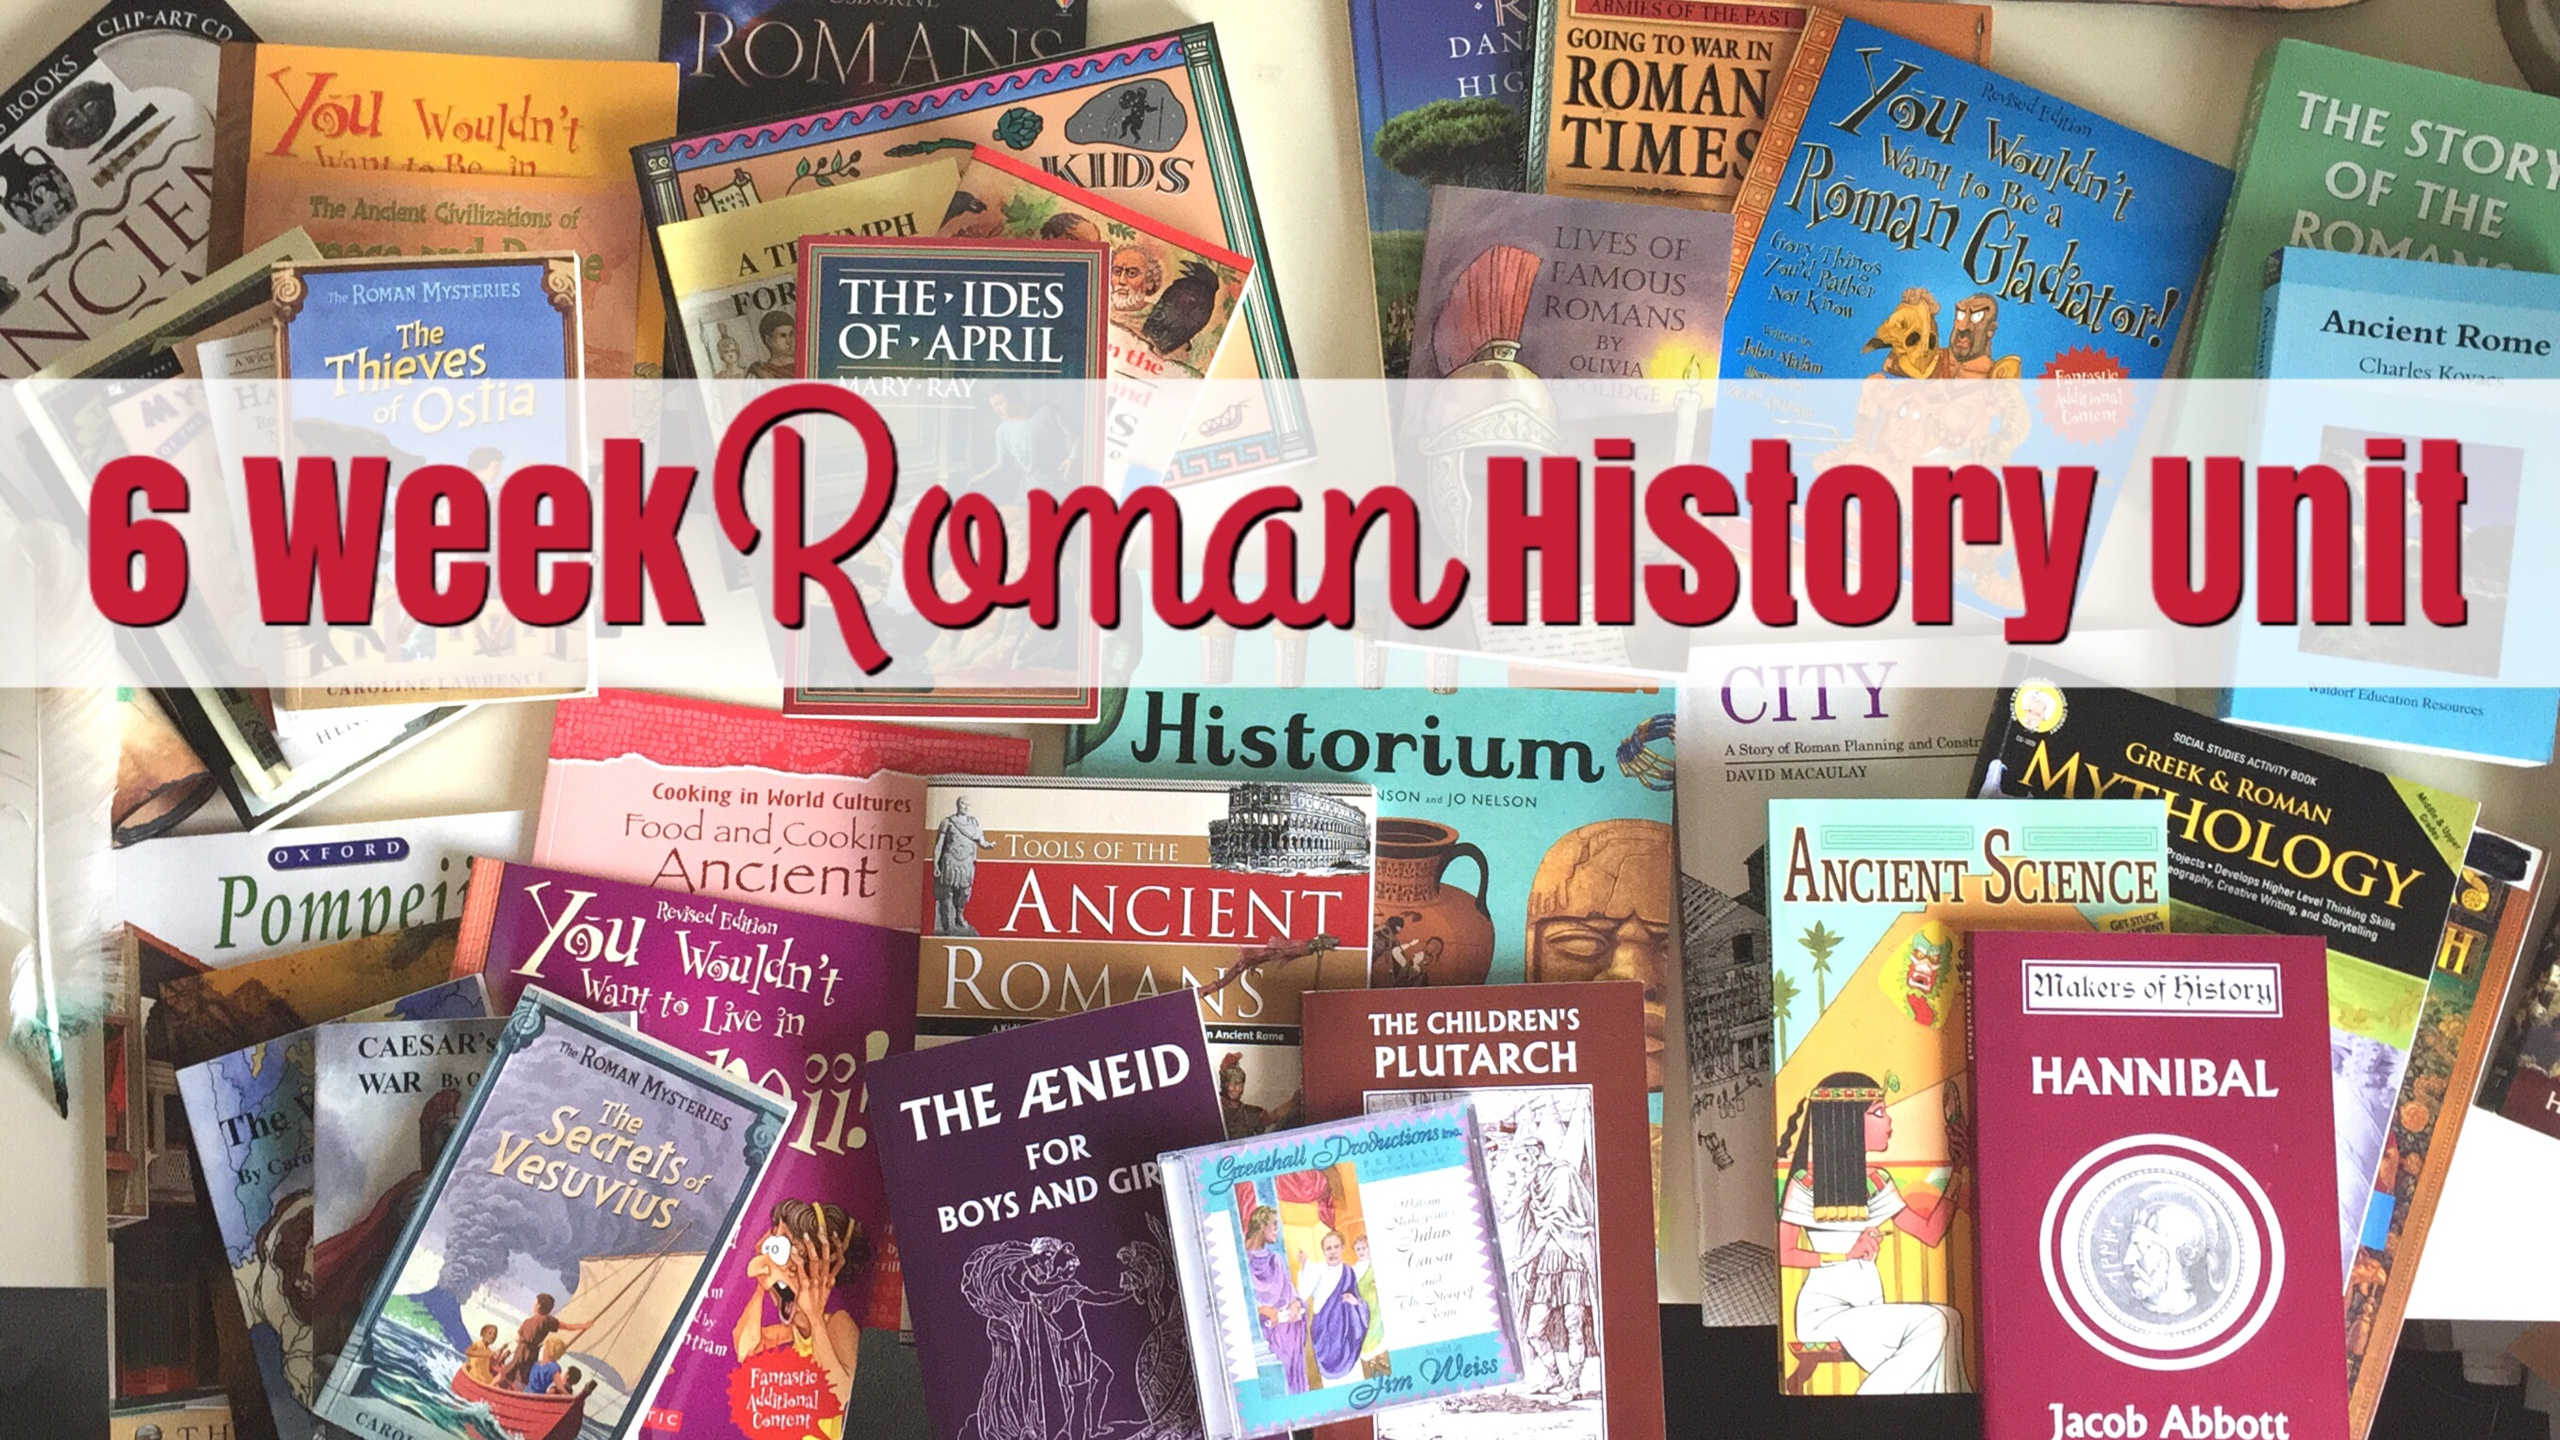 ROMAN HISTORY UNIT STUDY | HOW-TO PROCESS FROM START TO FINISH